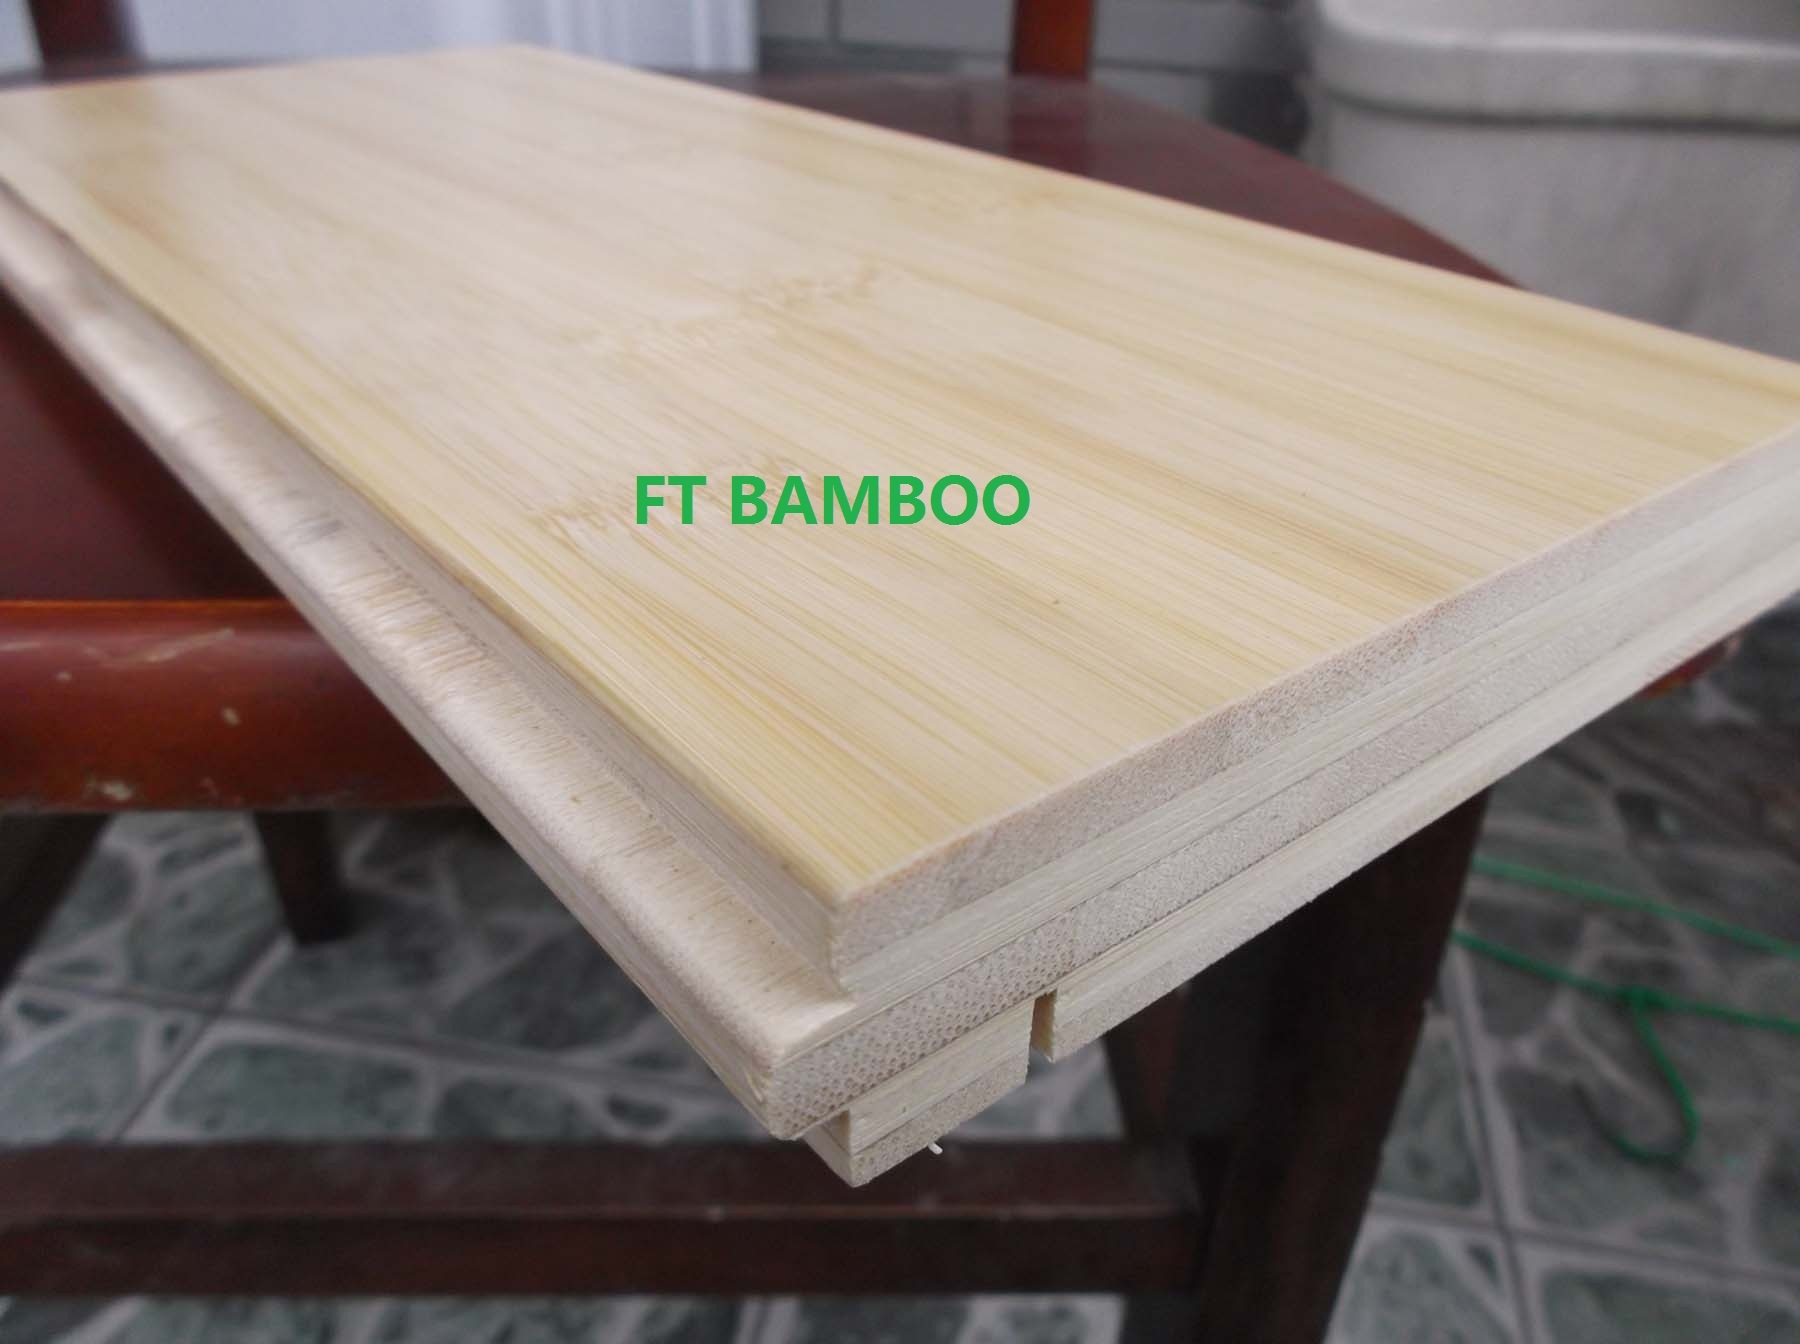 plancher de bambou de sport plancher de bambou de sport fournis par anhui feng tian bamboo. Black Bedroom Furniture Sets. Home Design Ideas